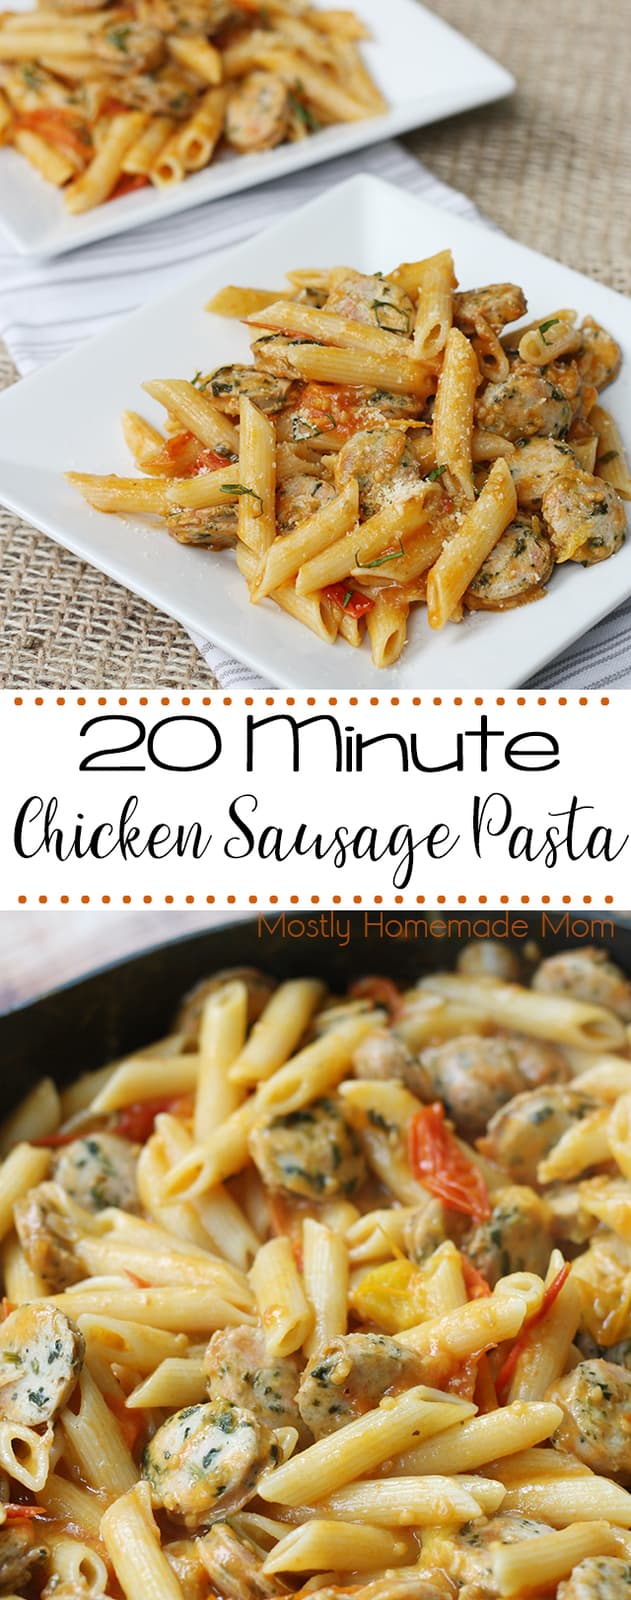 Chicken Sausage Pasta served in under 20 minutes! Penne pasta tossed with a fresh cherry tomato sauce, chicken sausage, and Parmesan cheese!